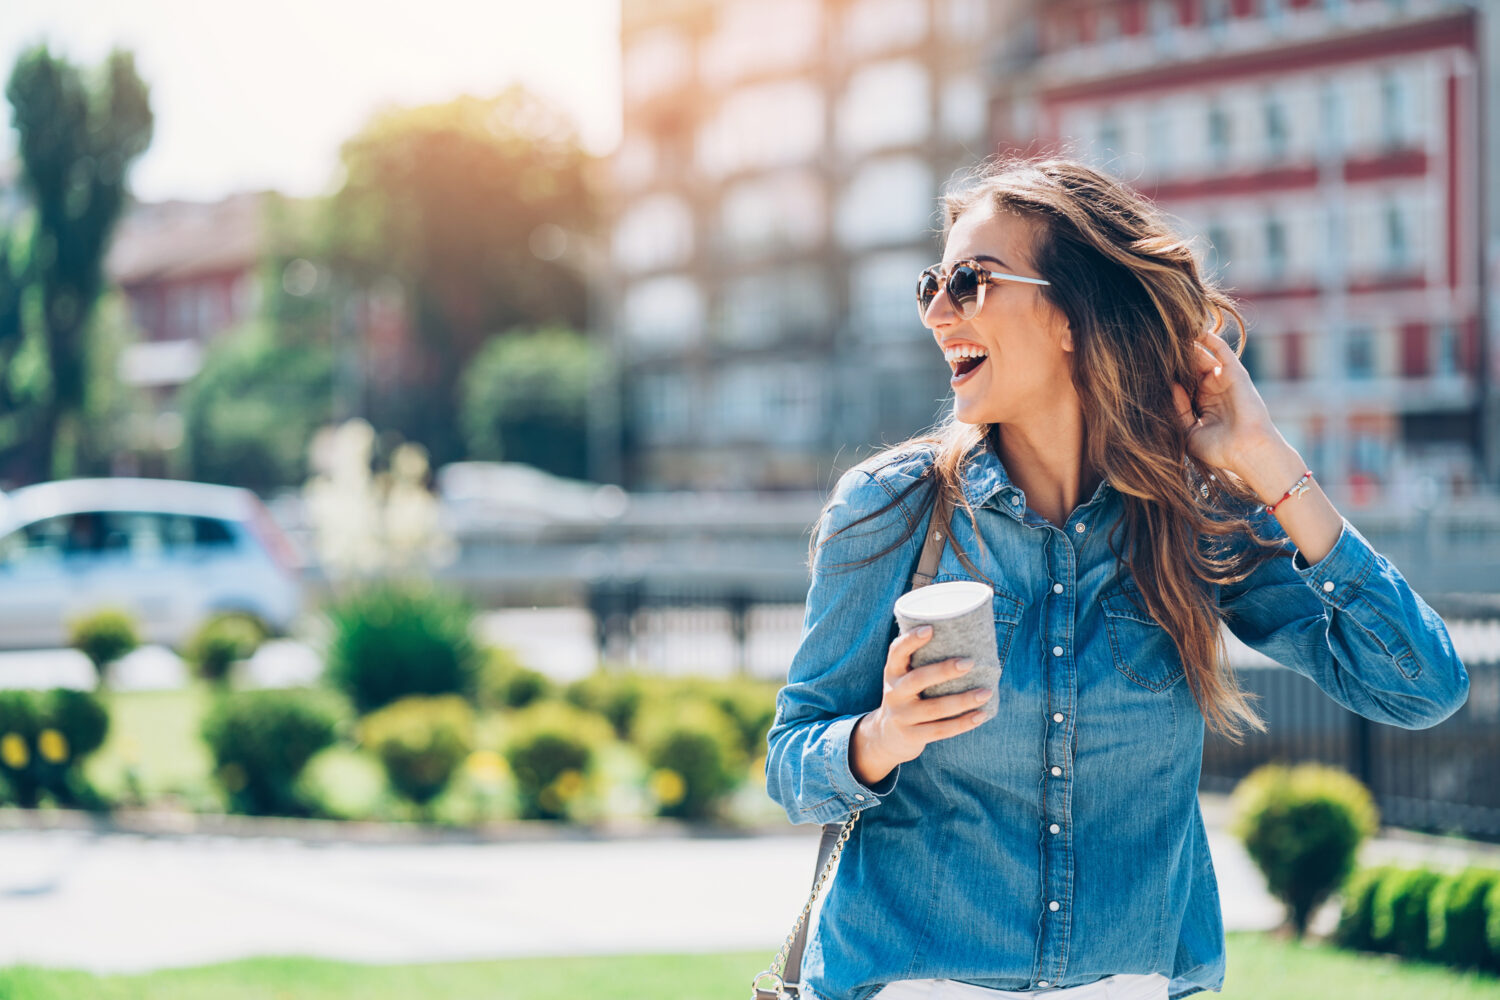 Cheerful young woman holding coffee in the city neighborhood